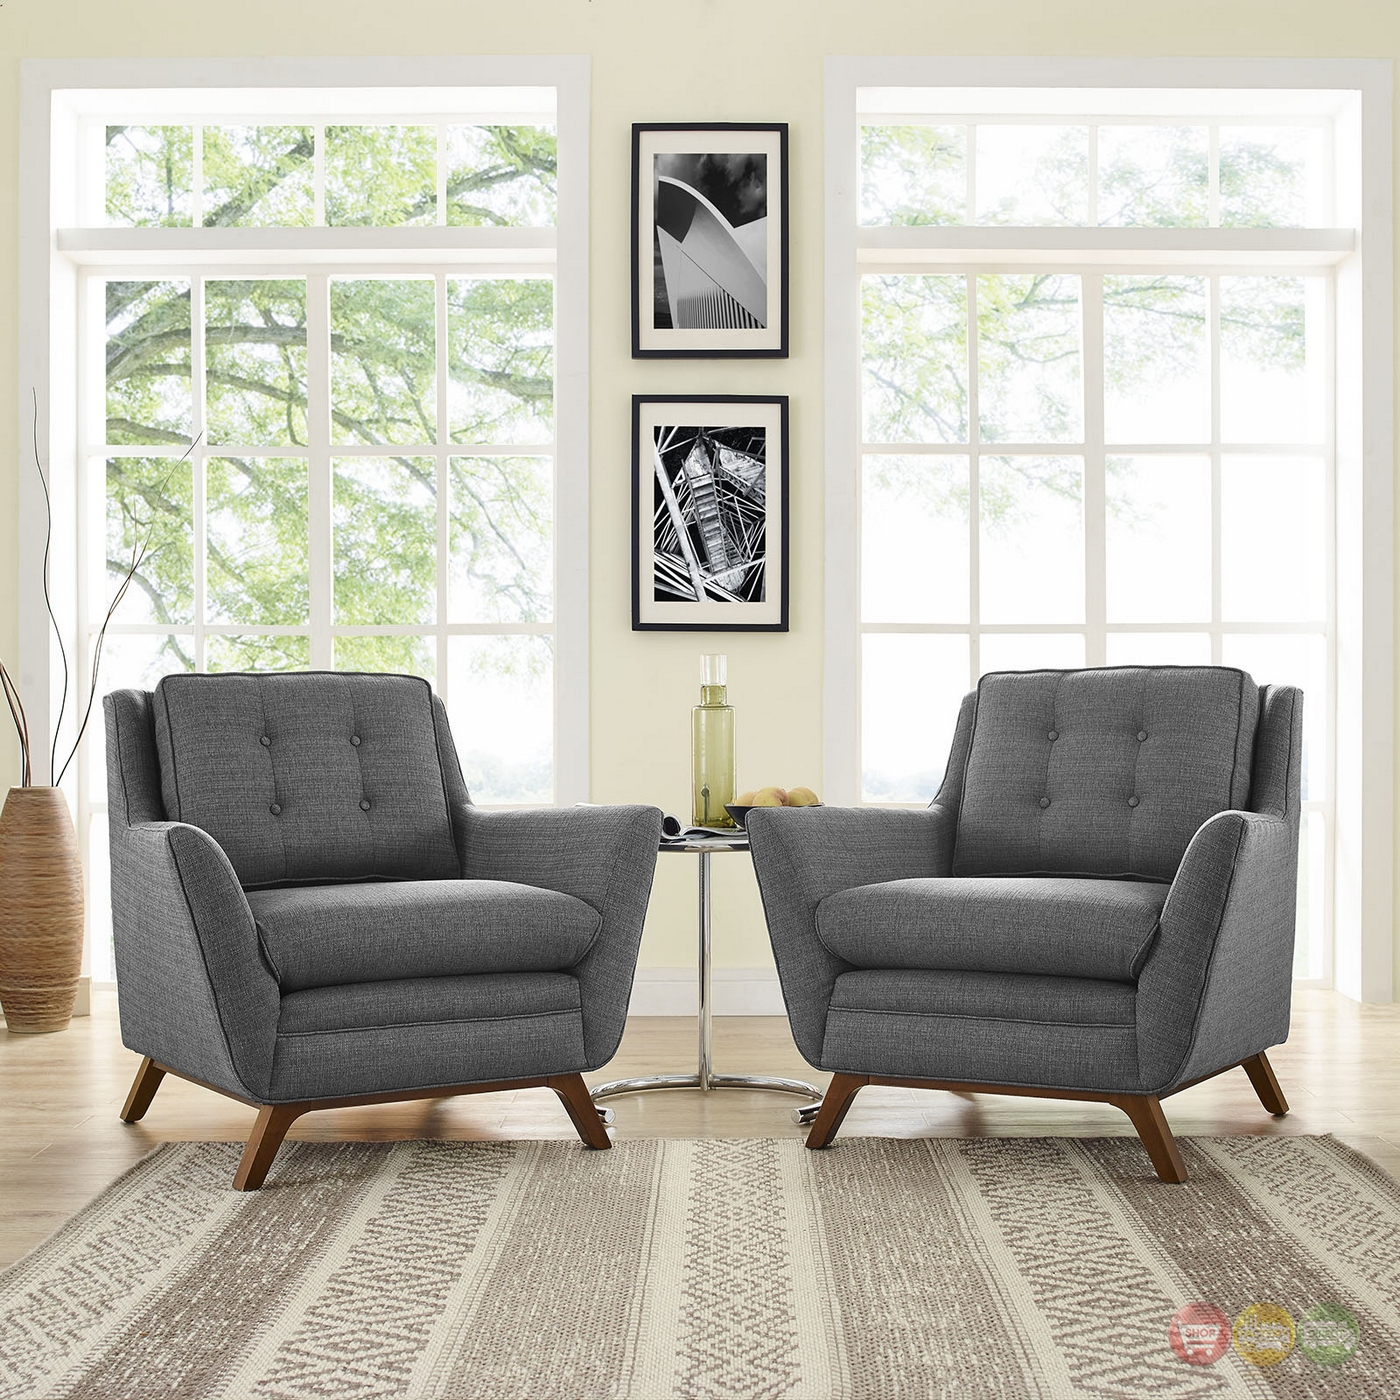 Living Room Sets: Mid-Century Modern Beguile 2pc Button-Tufted Fabric Living